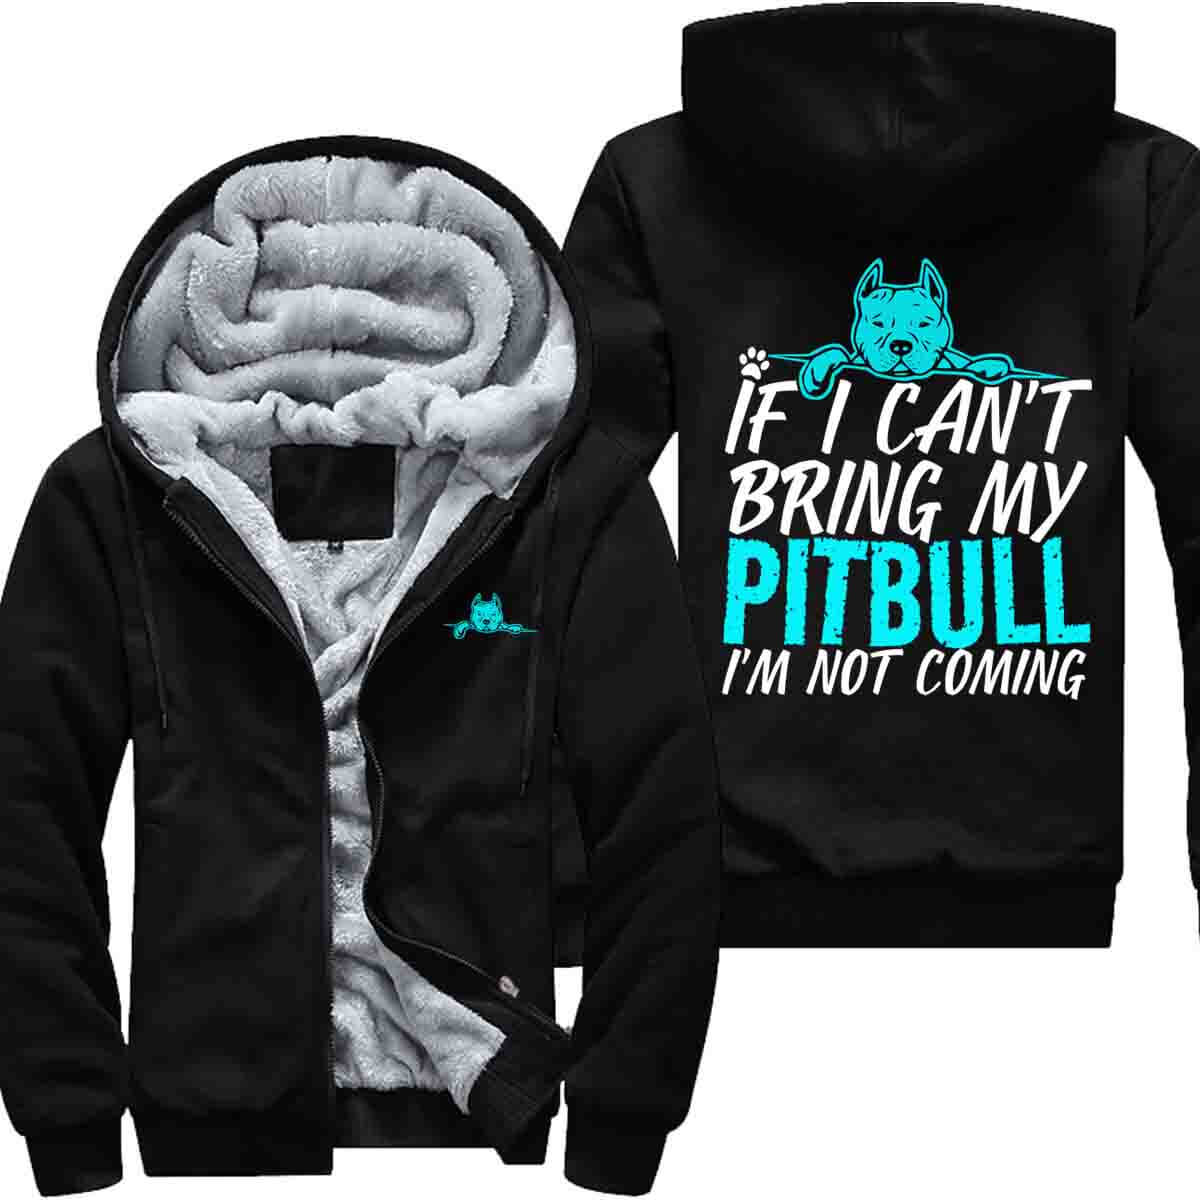 If I Can't Bring My Pitbull - Jacket